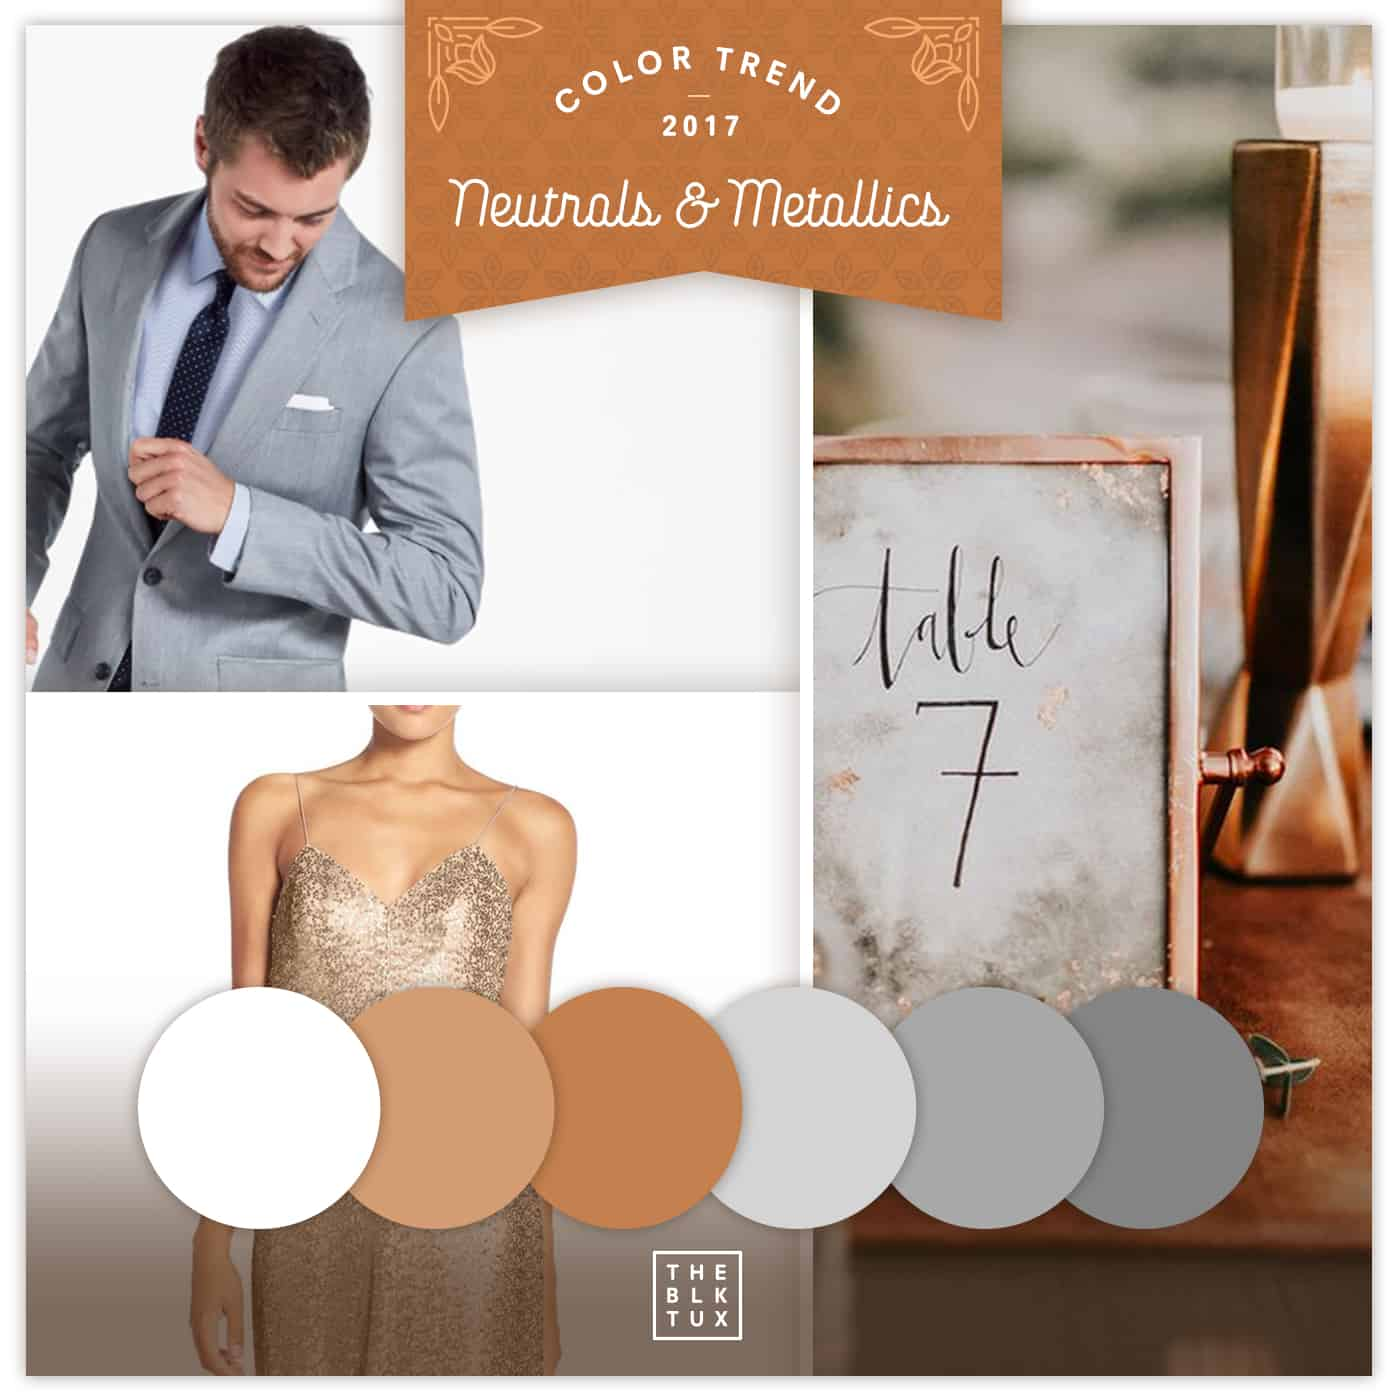 blktux_wedding_color_trends_x2